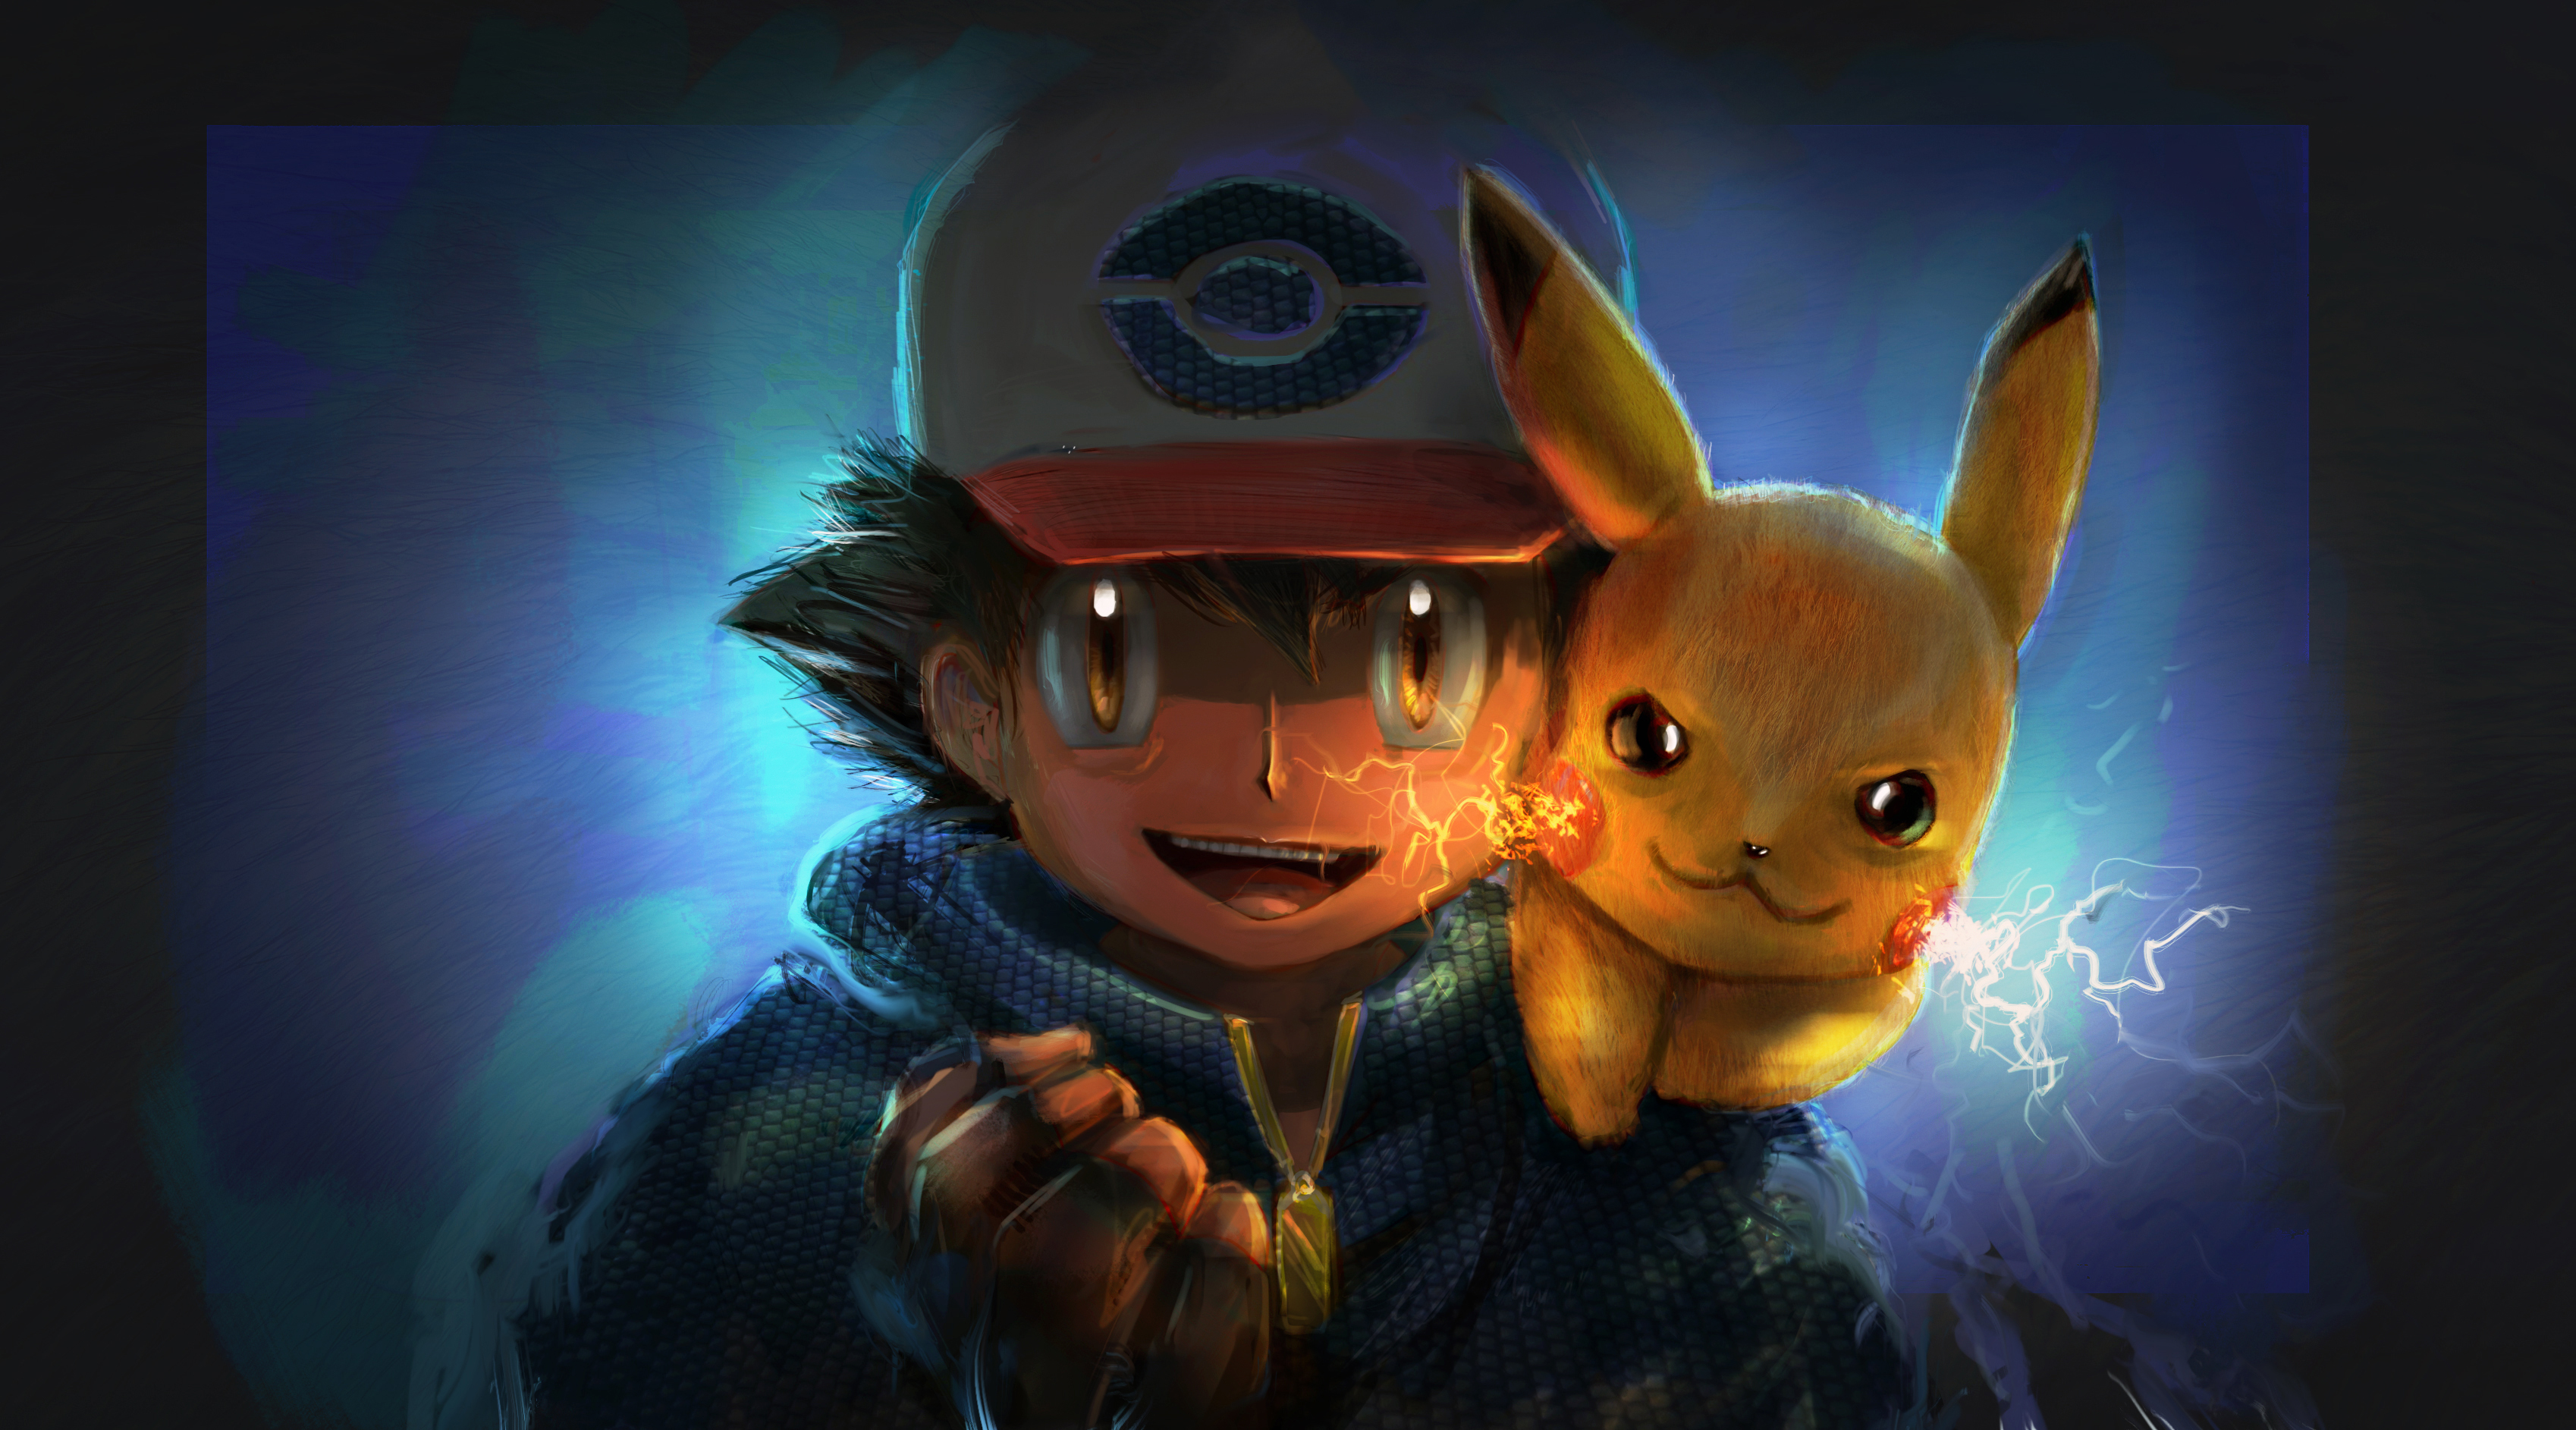 Ash And Pikachu Artwork Hd Anime 4k Wallpapers Images